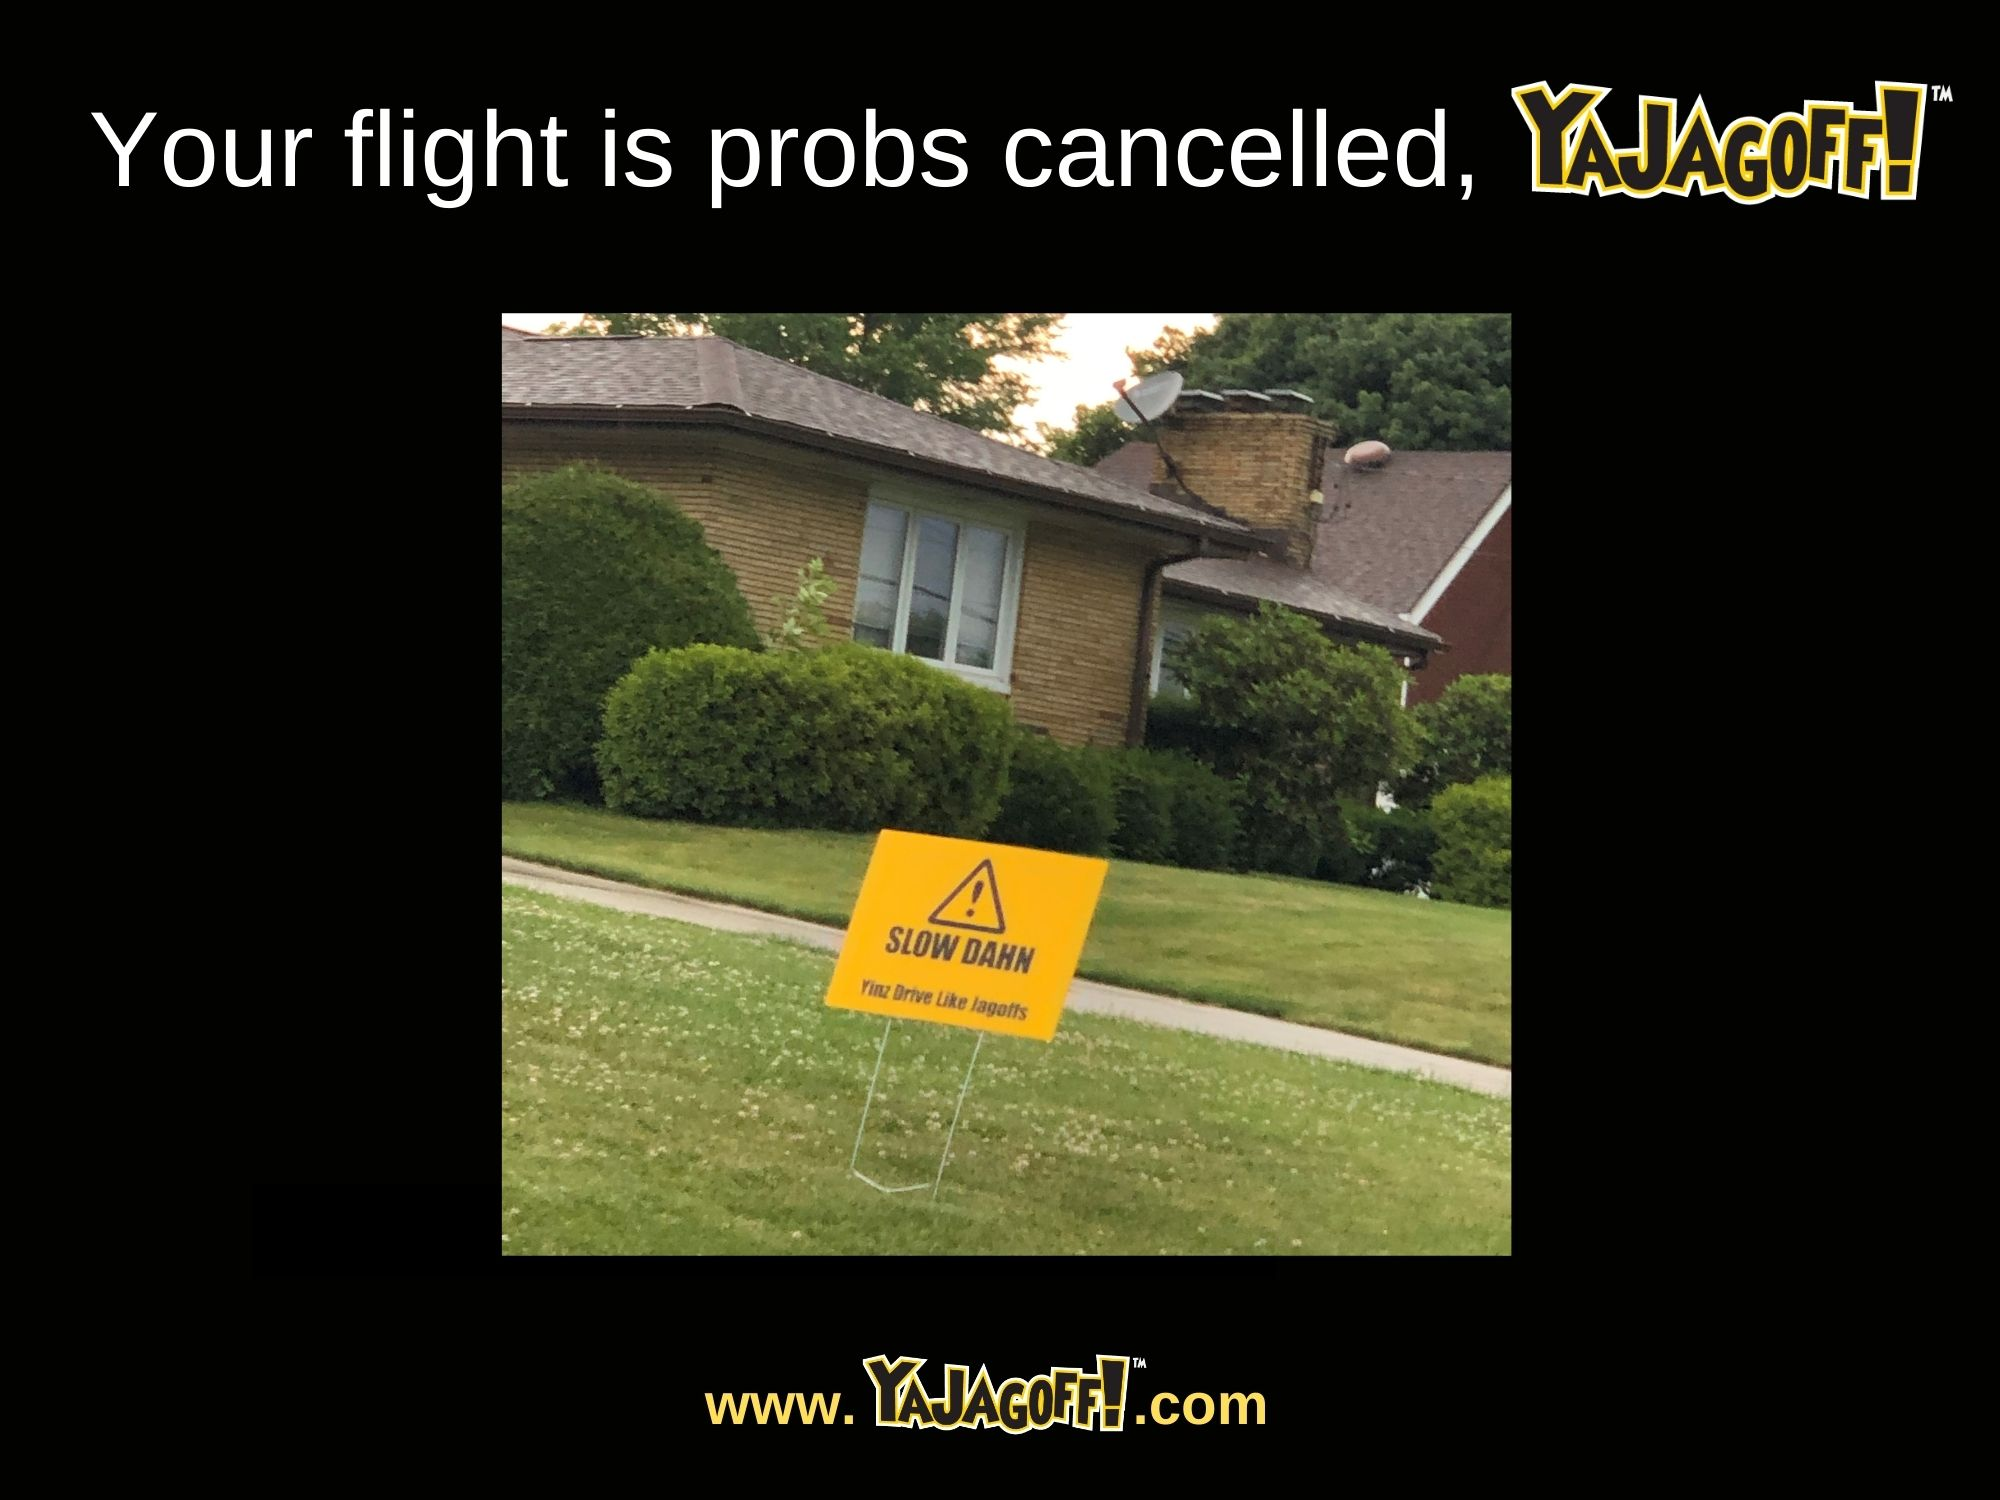 Pittsburgh Jagoff blog airline cancellations